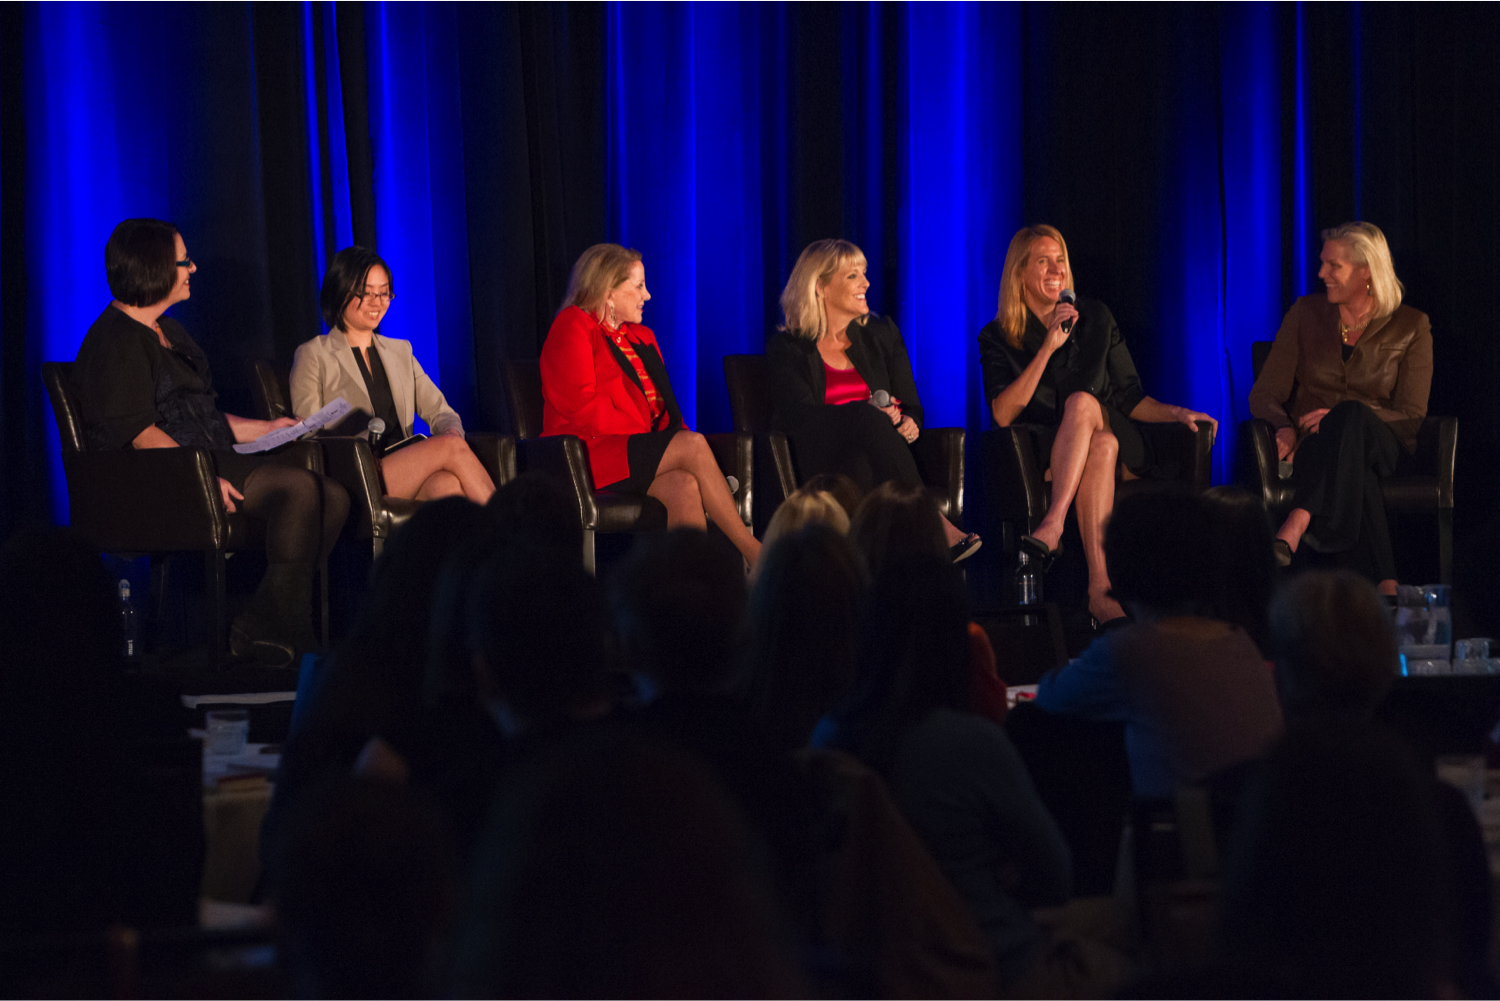 Not Your Average Tech Conference: Dreamforce Highlights Women in Tech